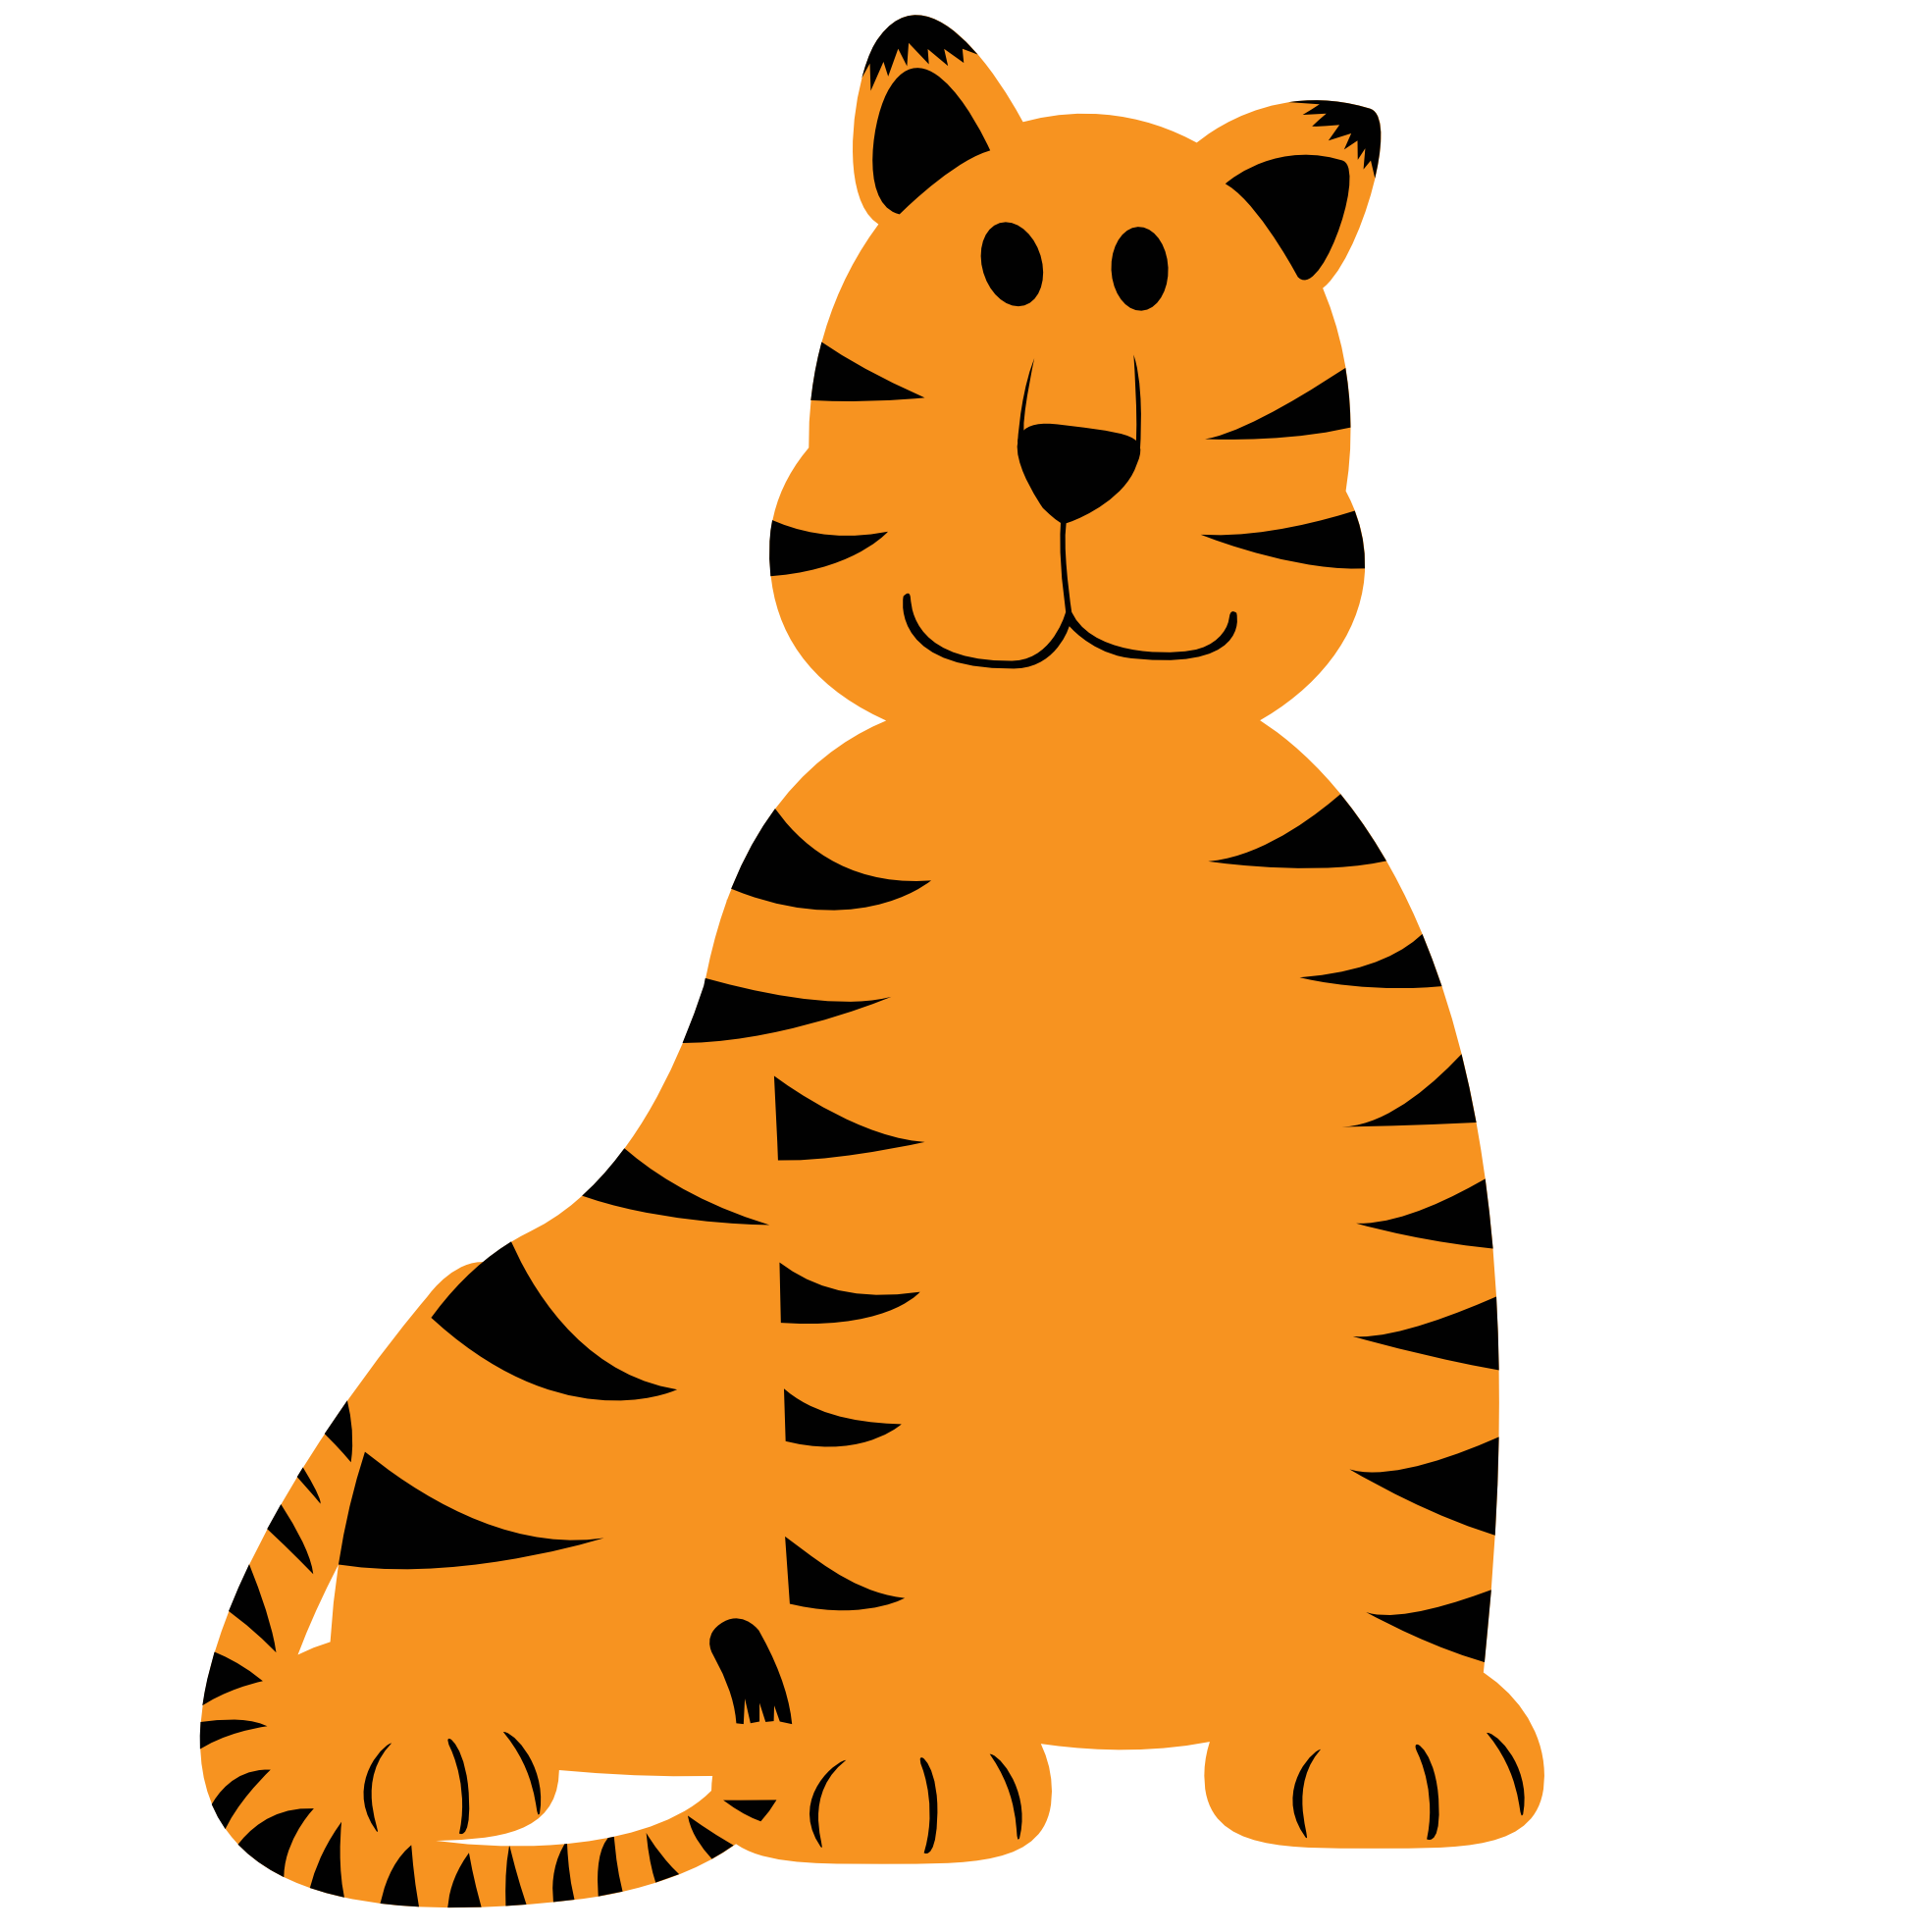 Tiger clipart orange #1